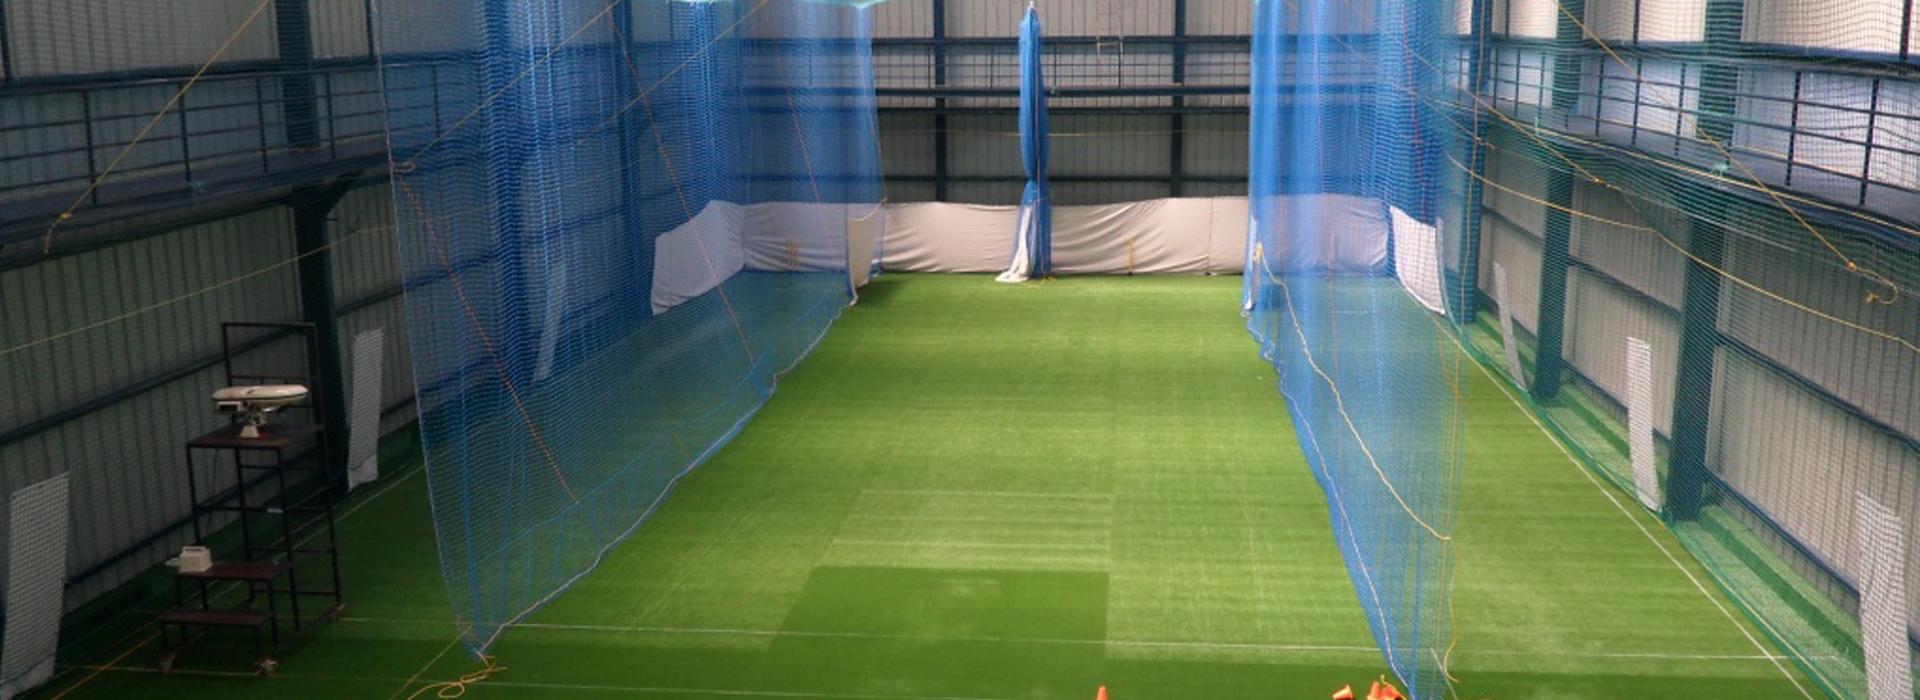 Cricket Pitch Artificial Grass Bangalore India